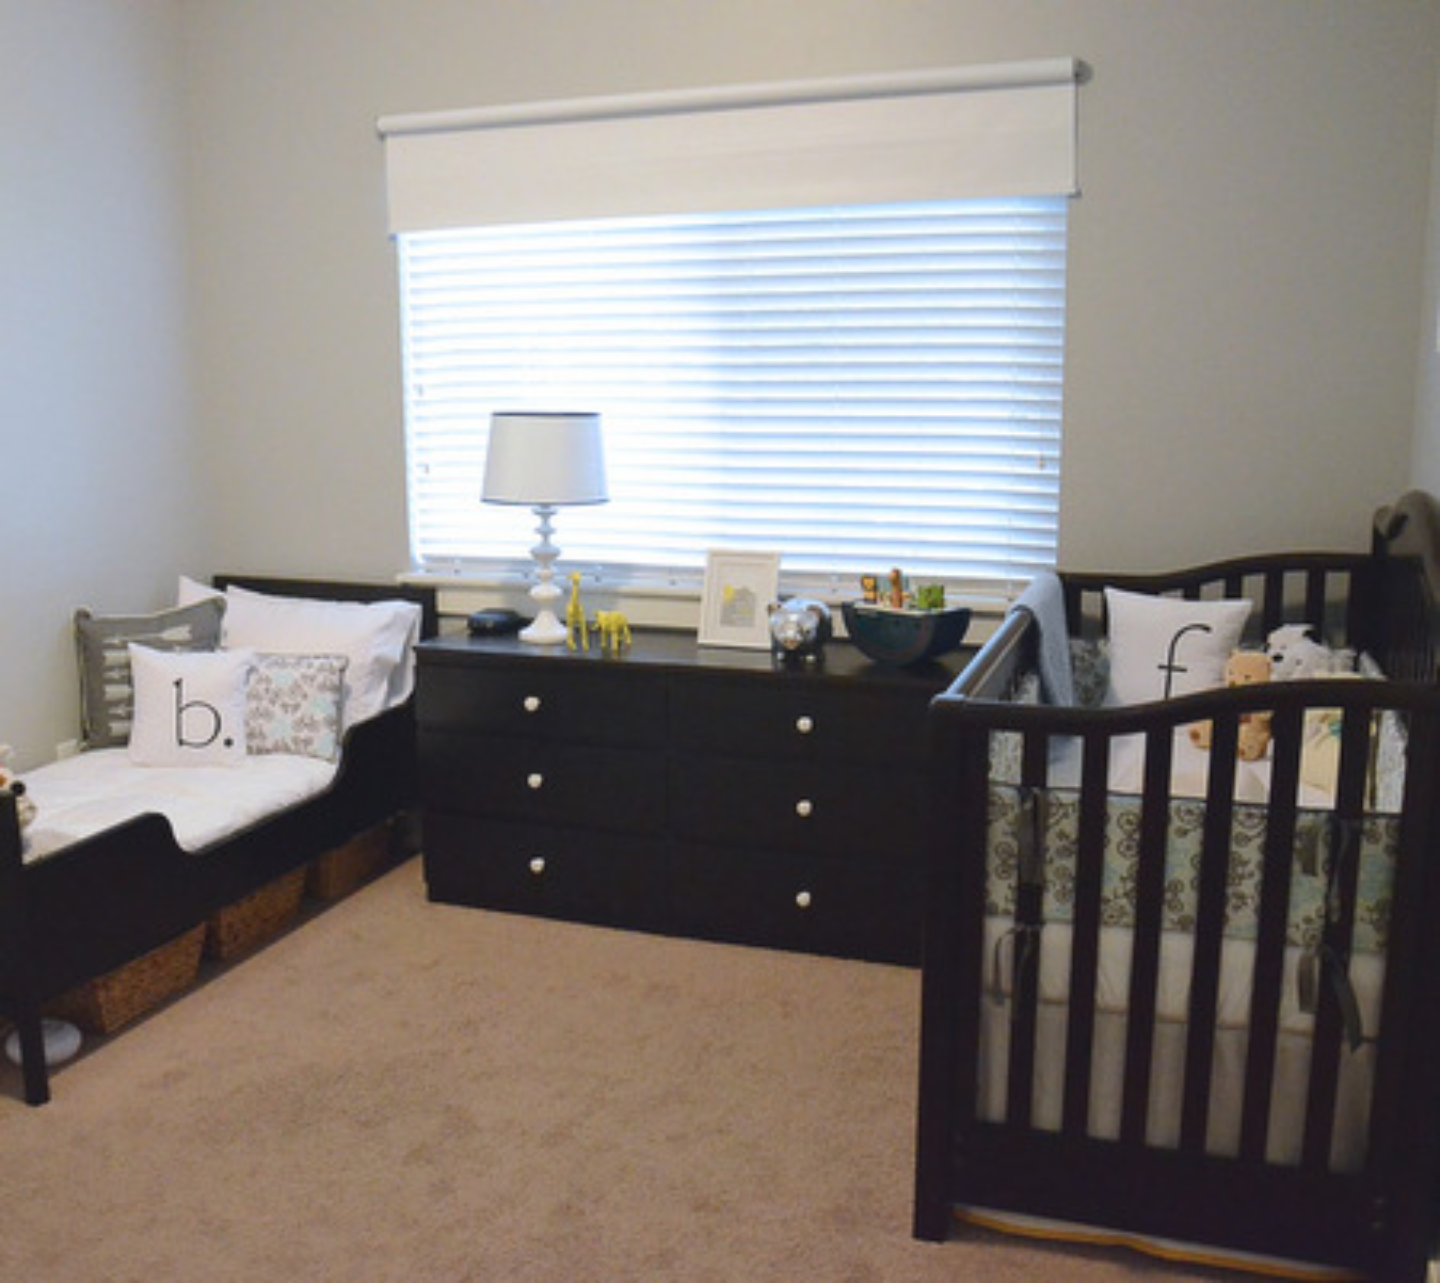 Boys Shared Bedroom Ideas: Simple Shared Bedroom For A Toddler And Baby While On A